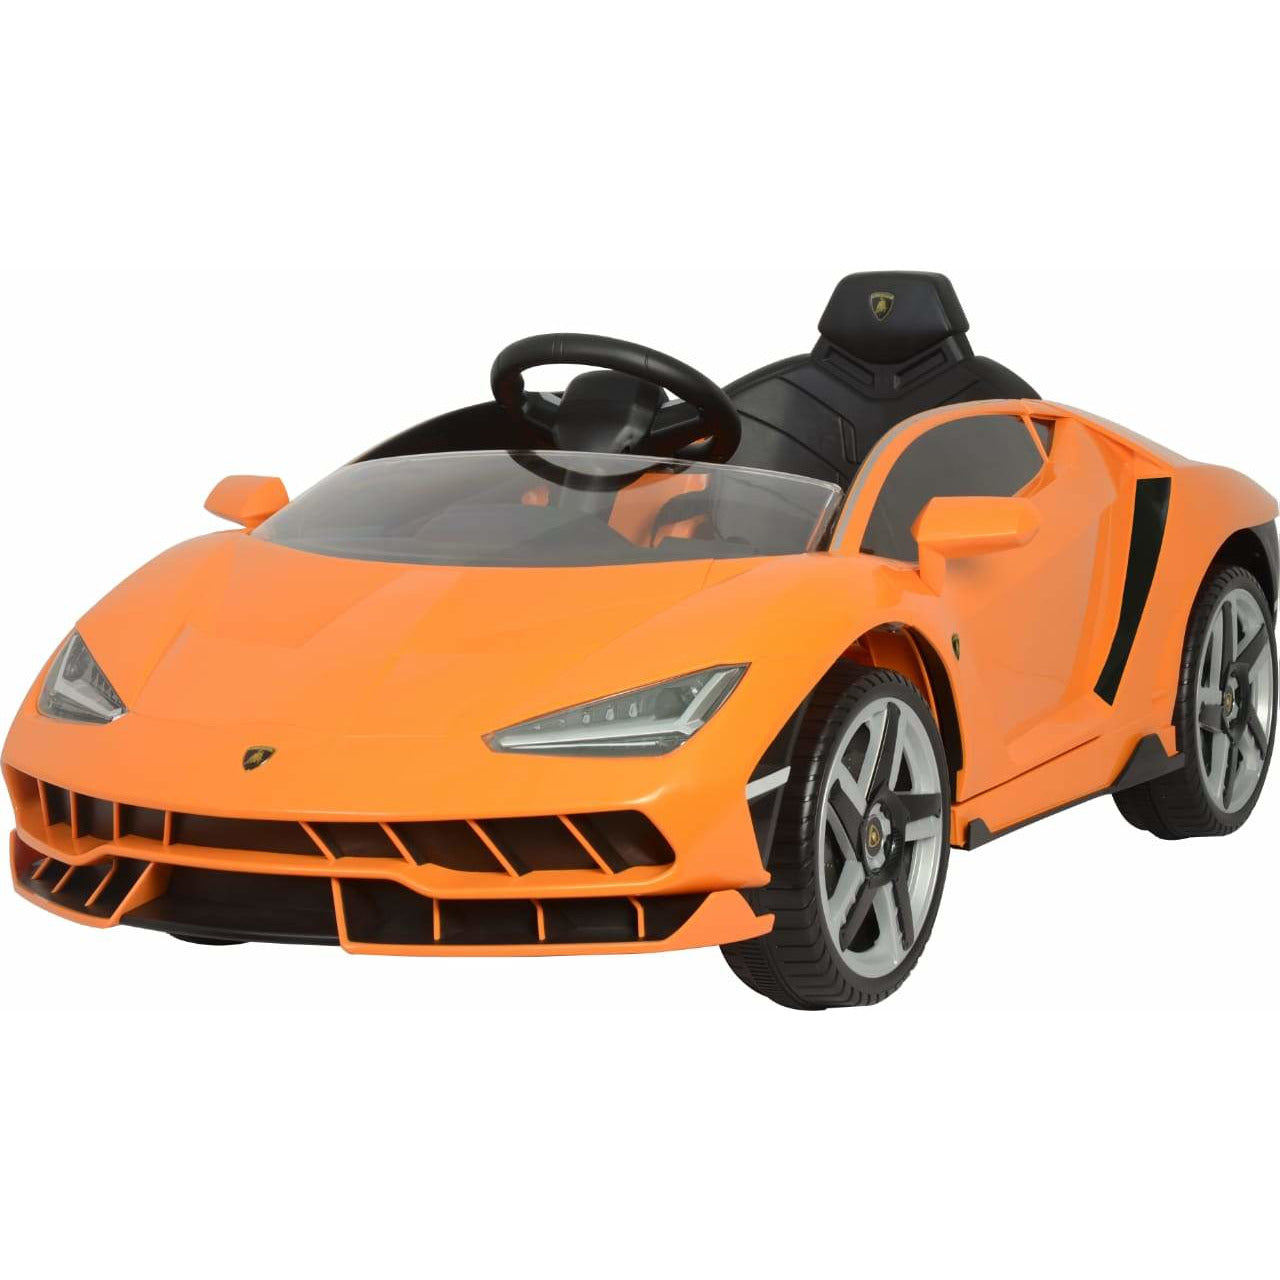 Ride On Raf 12 V Premium Licensed Lamborghini Centenario  kids Convertible car With Cooling fan